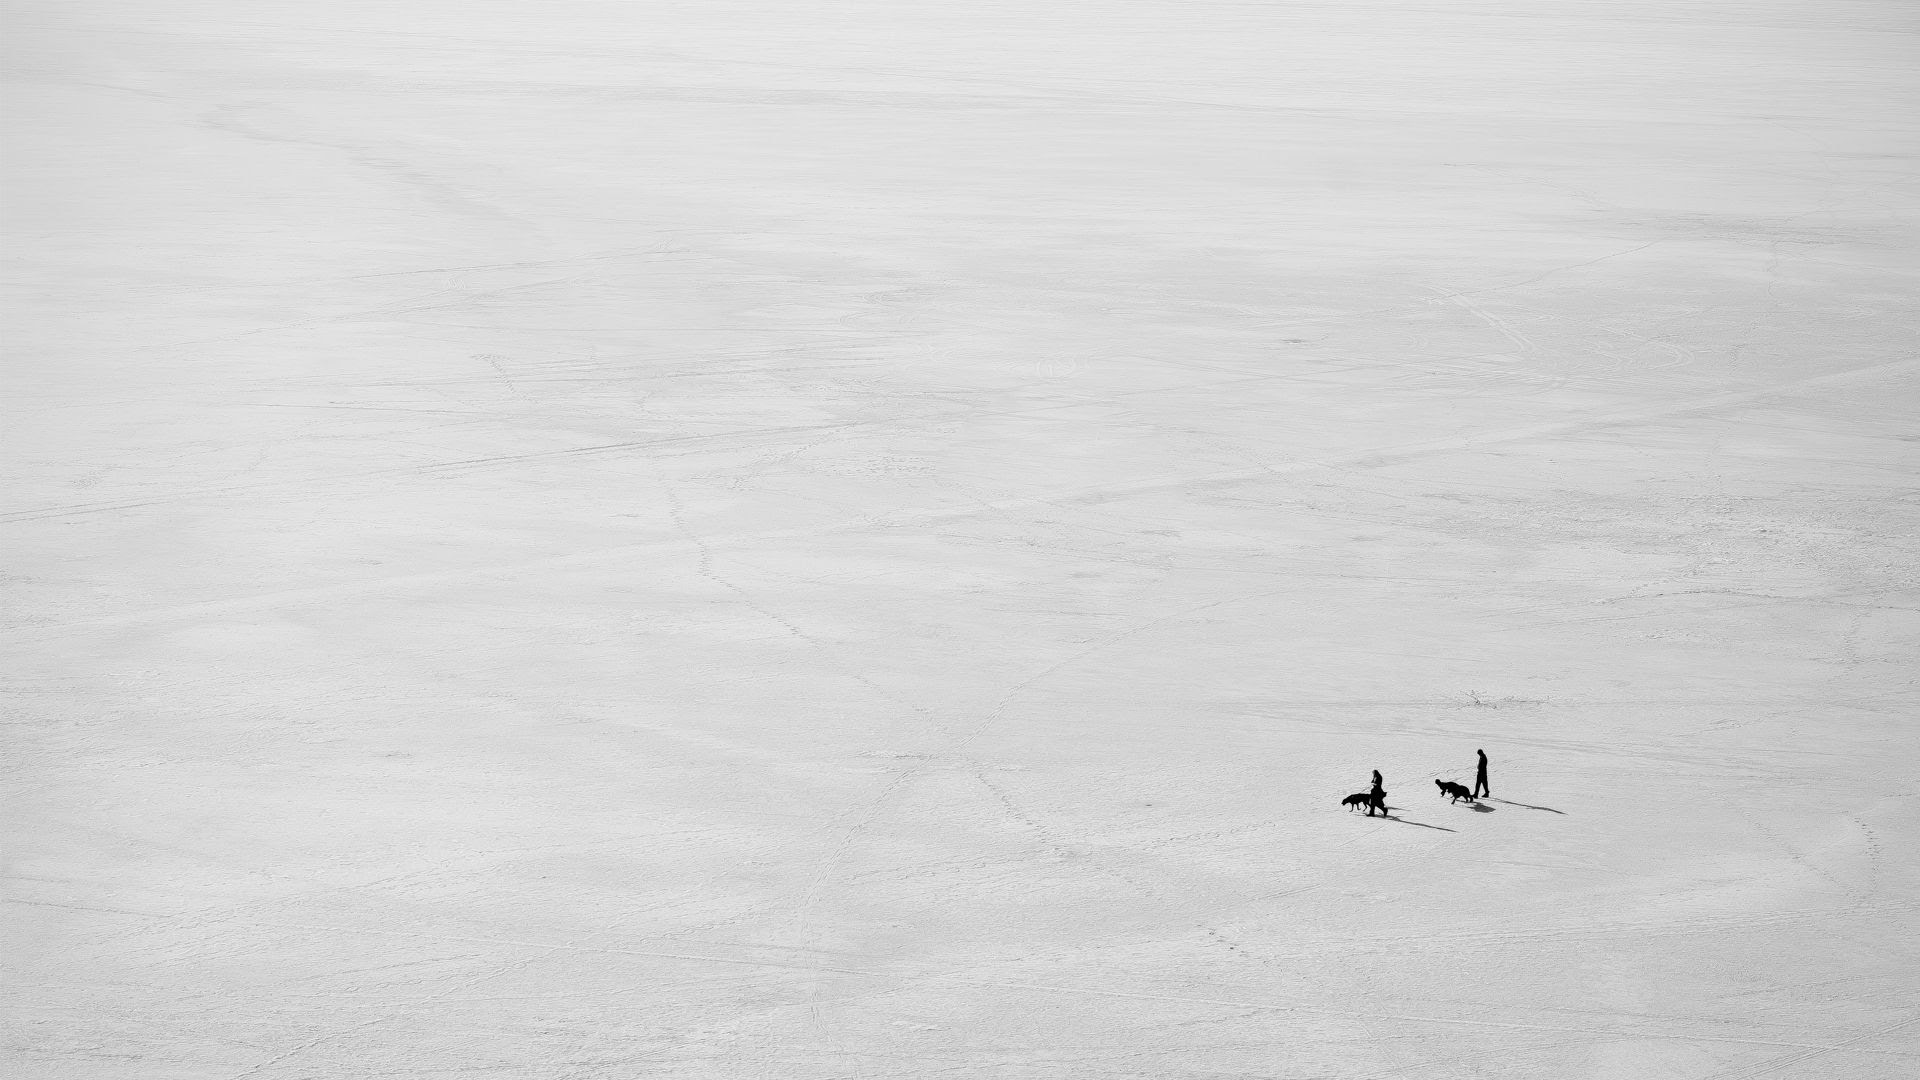 A lot of great minimalistic photography here recently. I ...